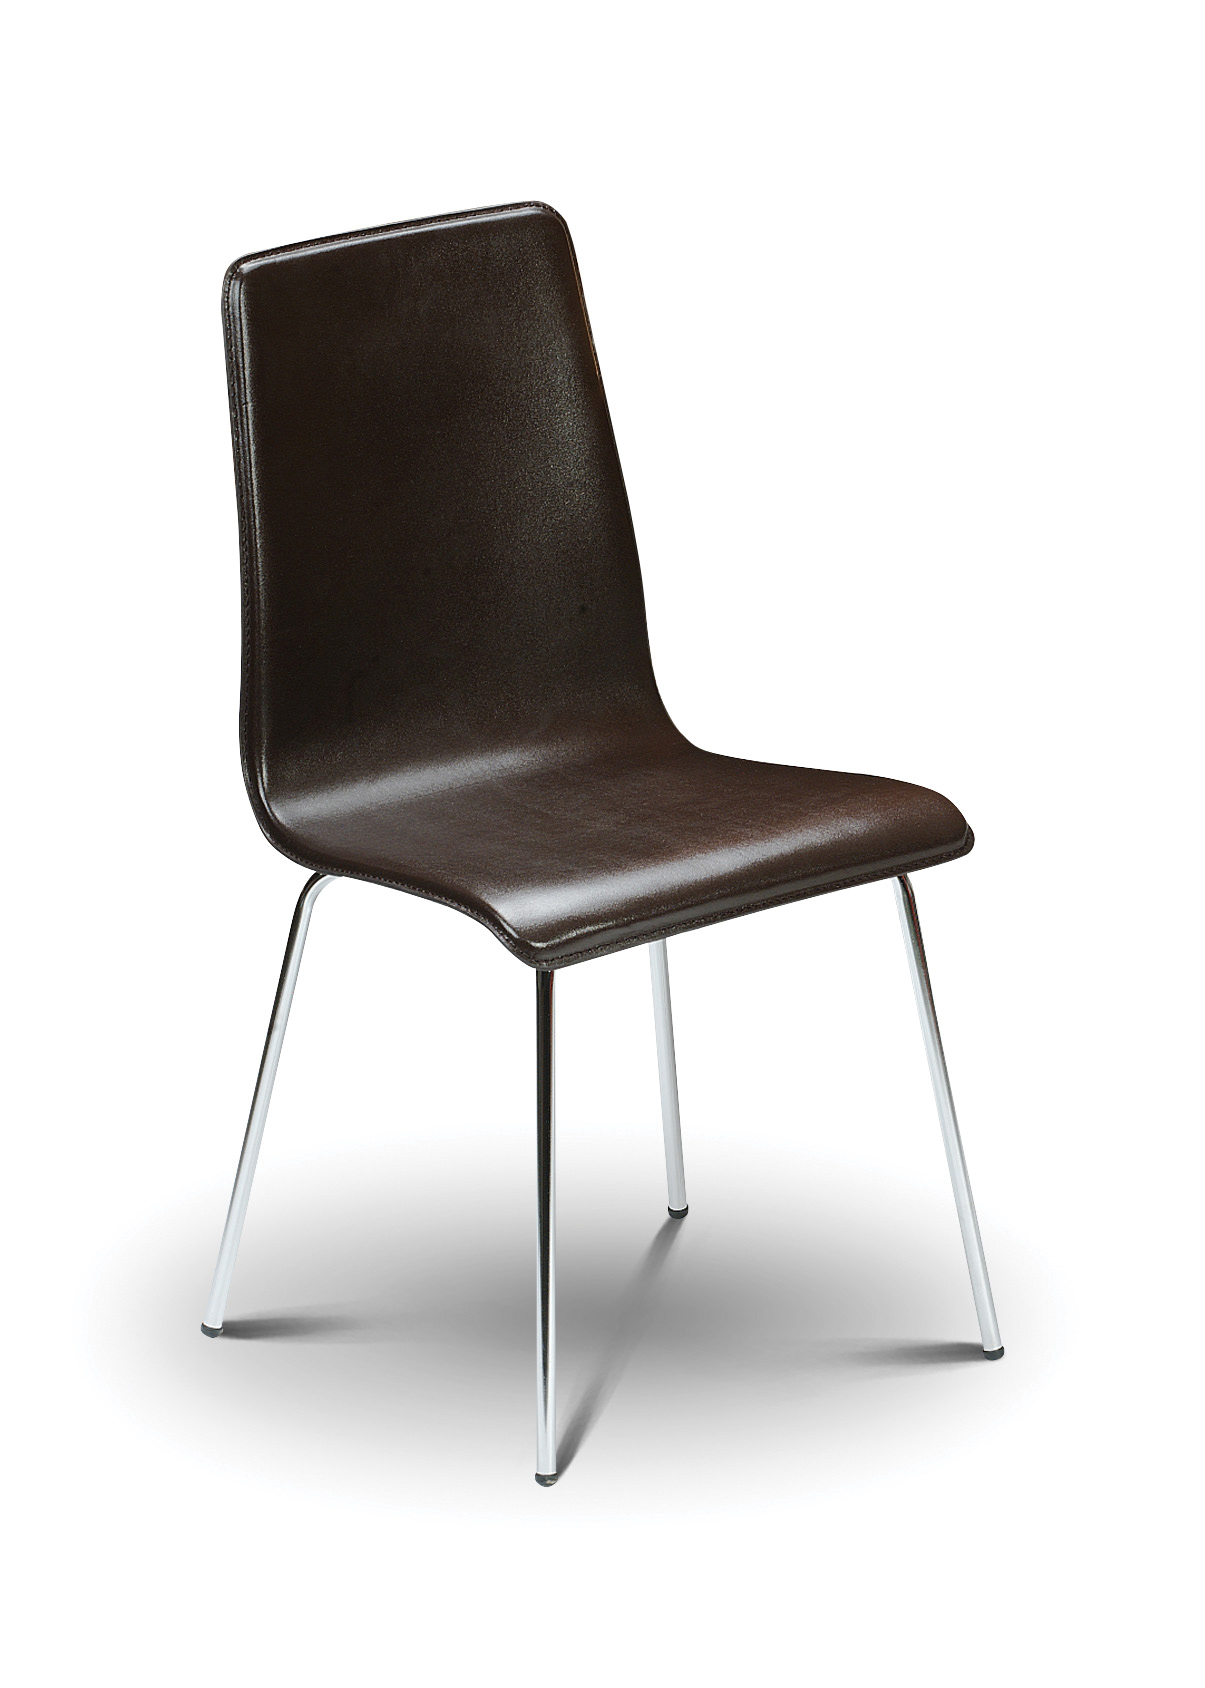 Contemporary Brown Faux Leather Chair